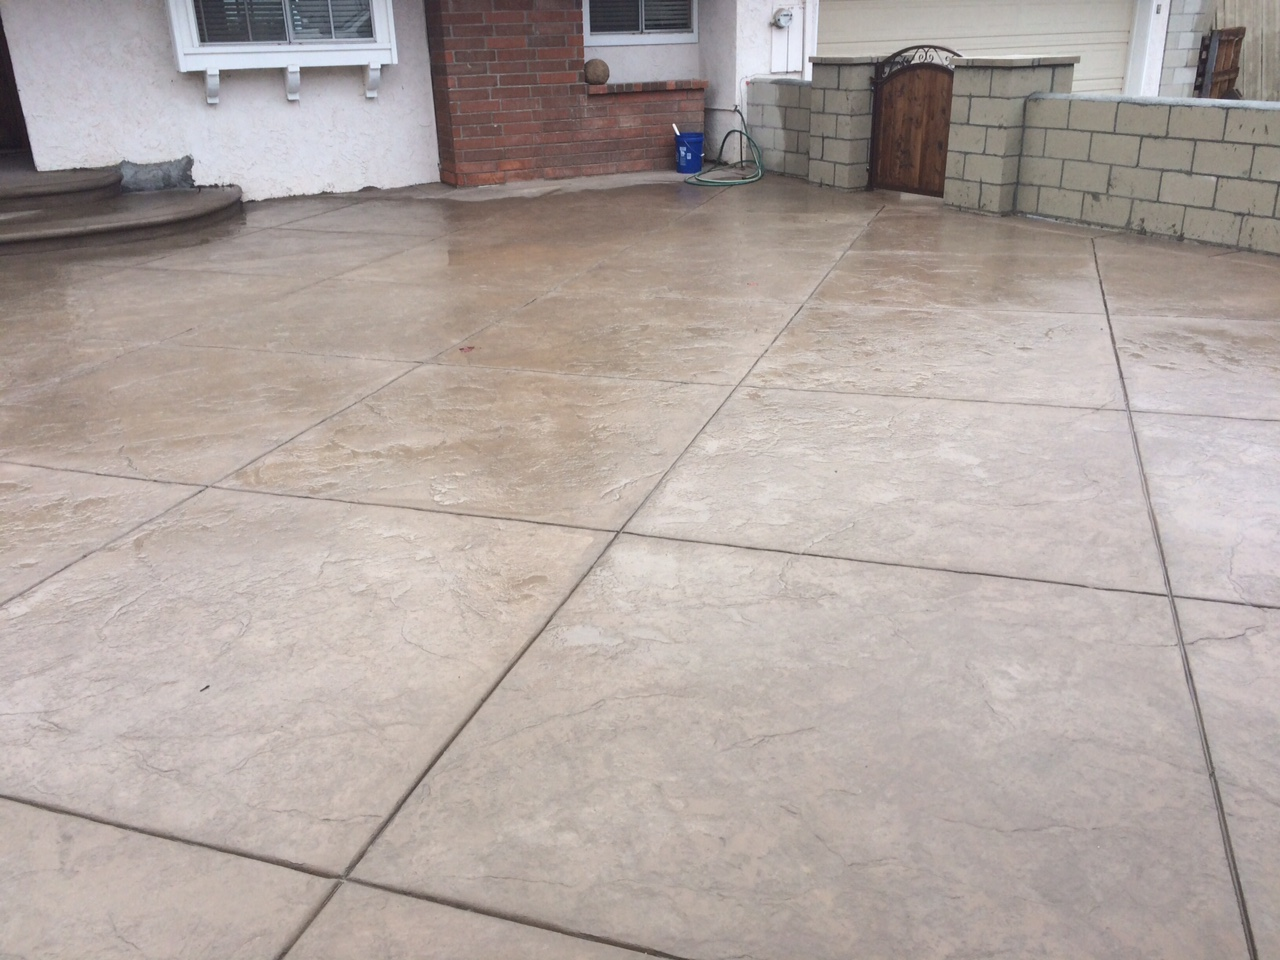 Concrete landscaping finished!